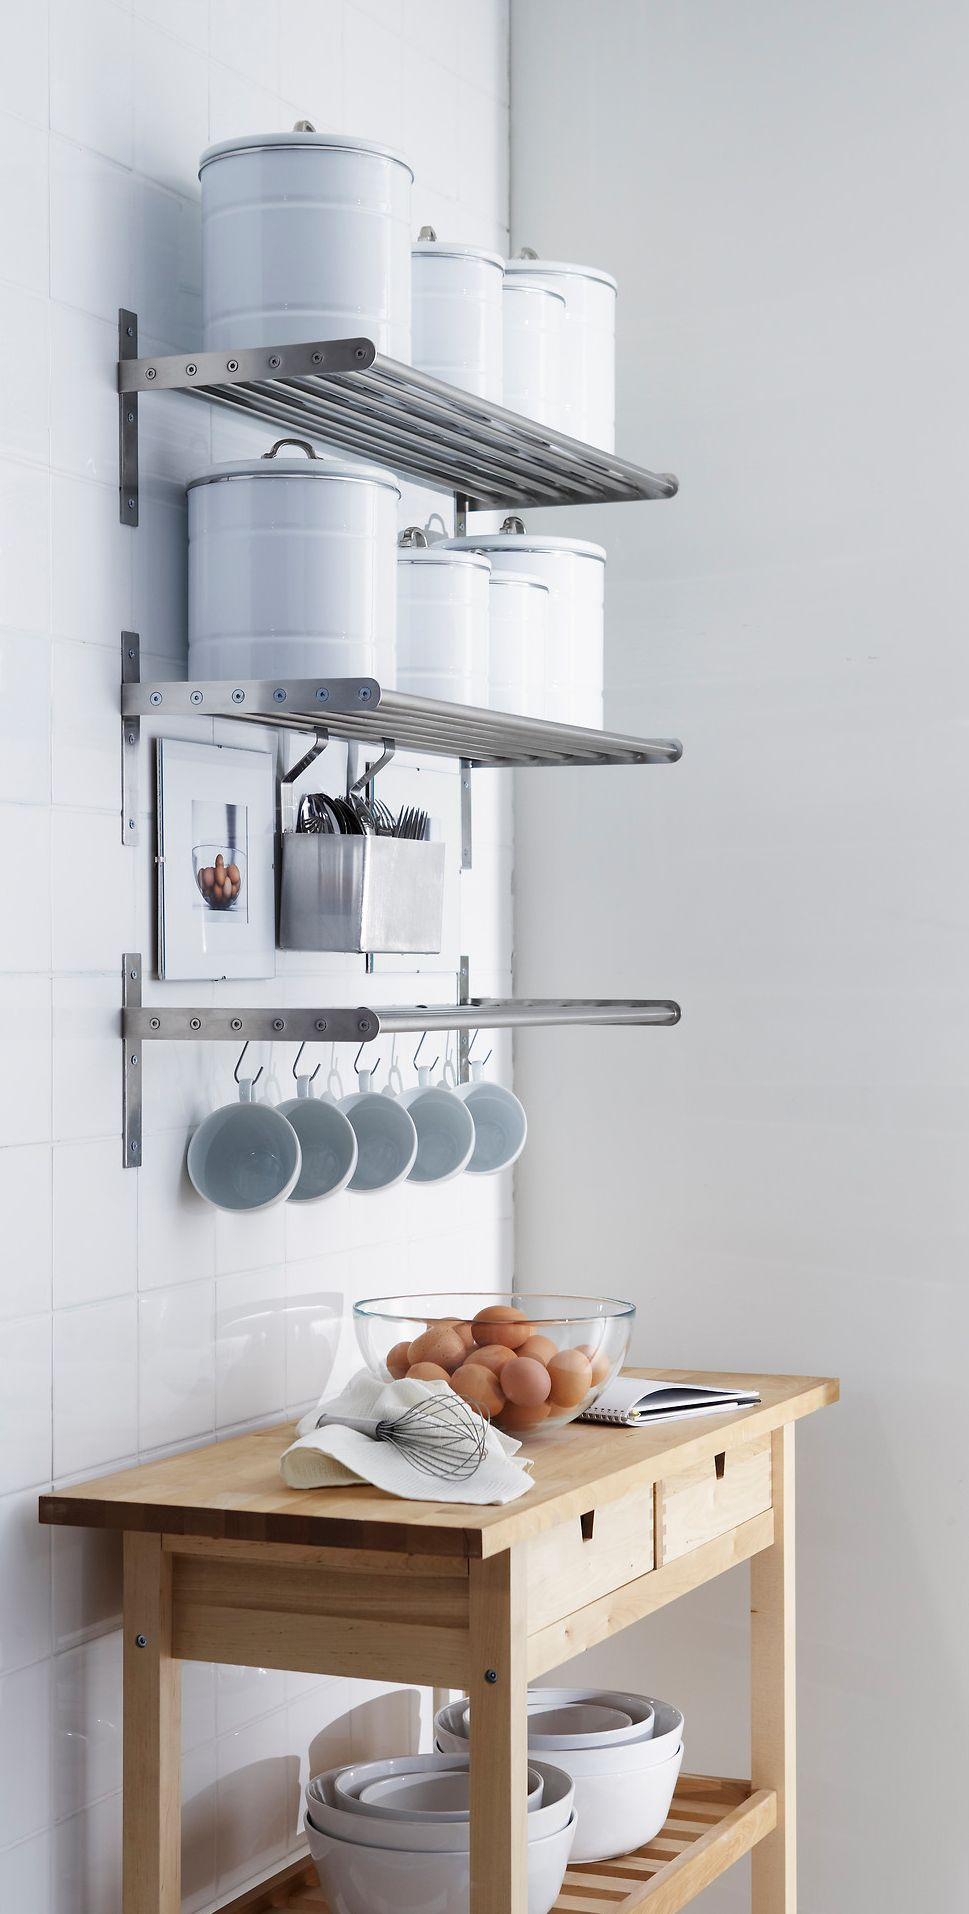 Attrayant 65 Ingenious Kitchen Organization Tips And Storage Ideas